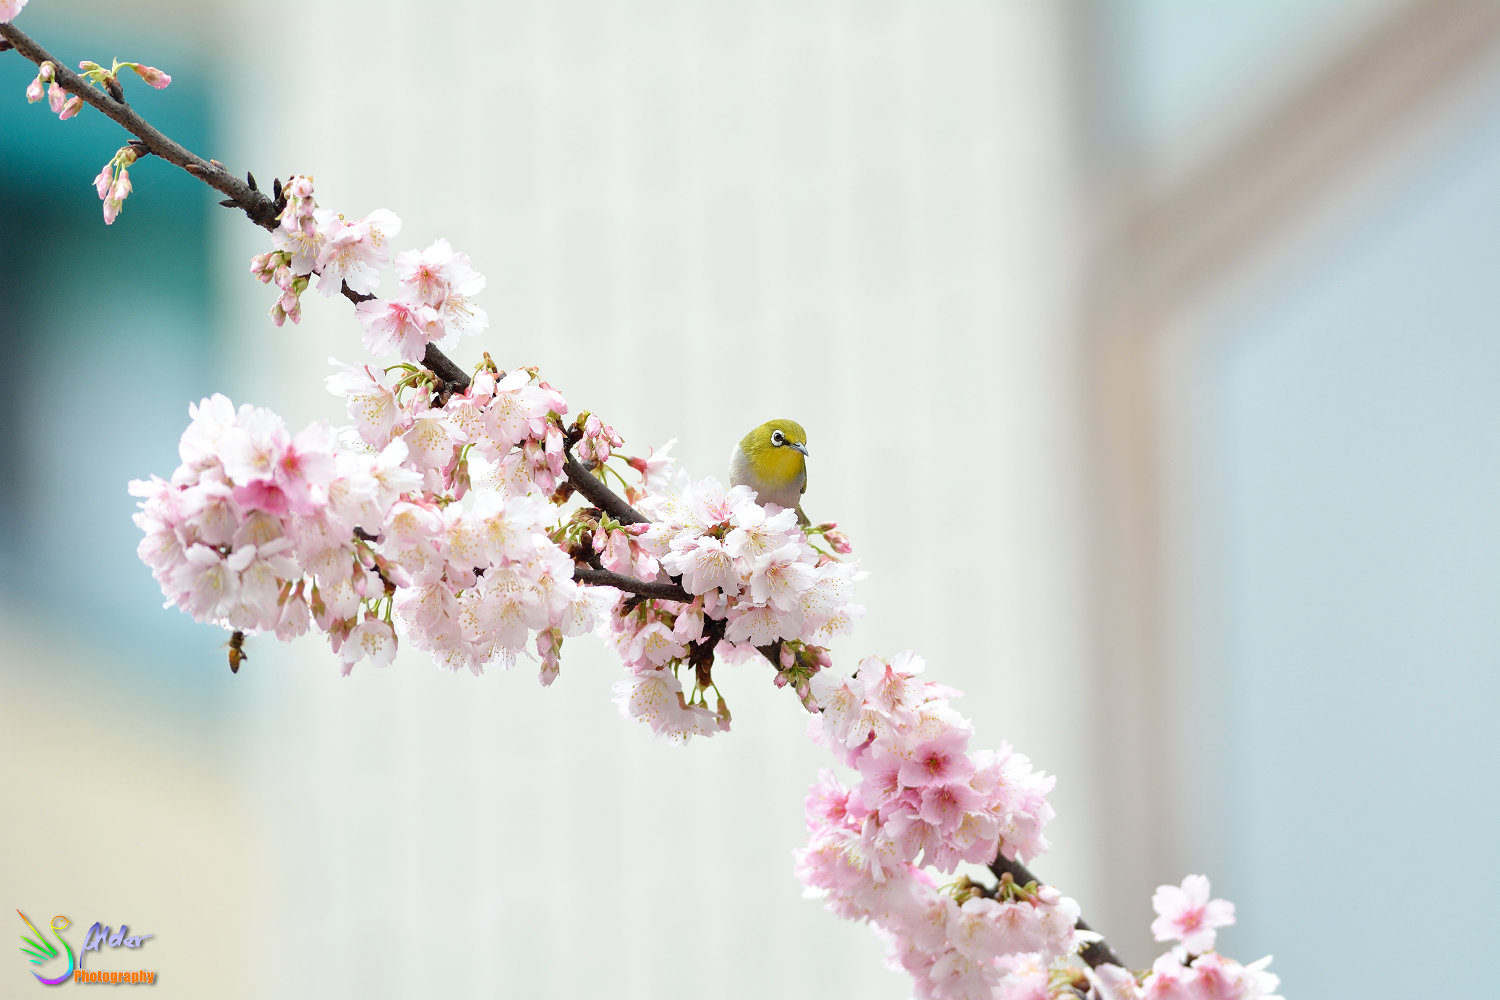 Sakura_White-eye_6419